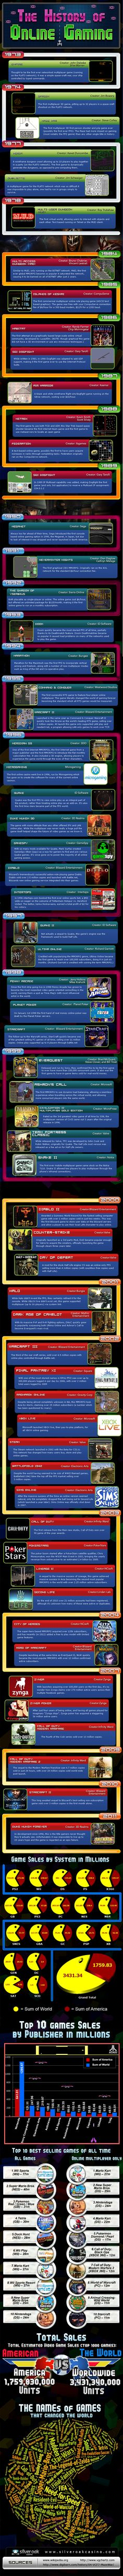 The History of Online Gaming